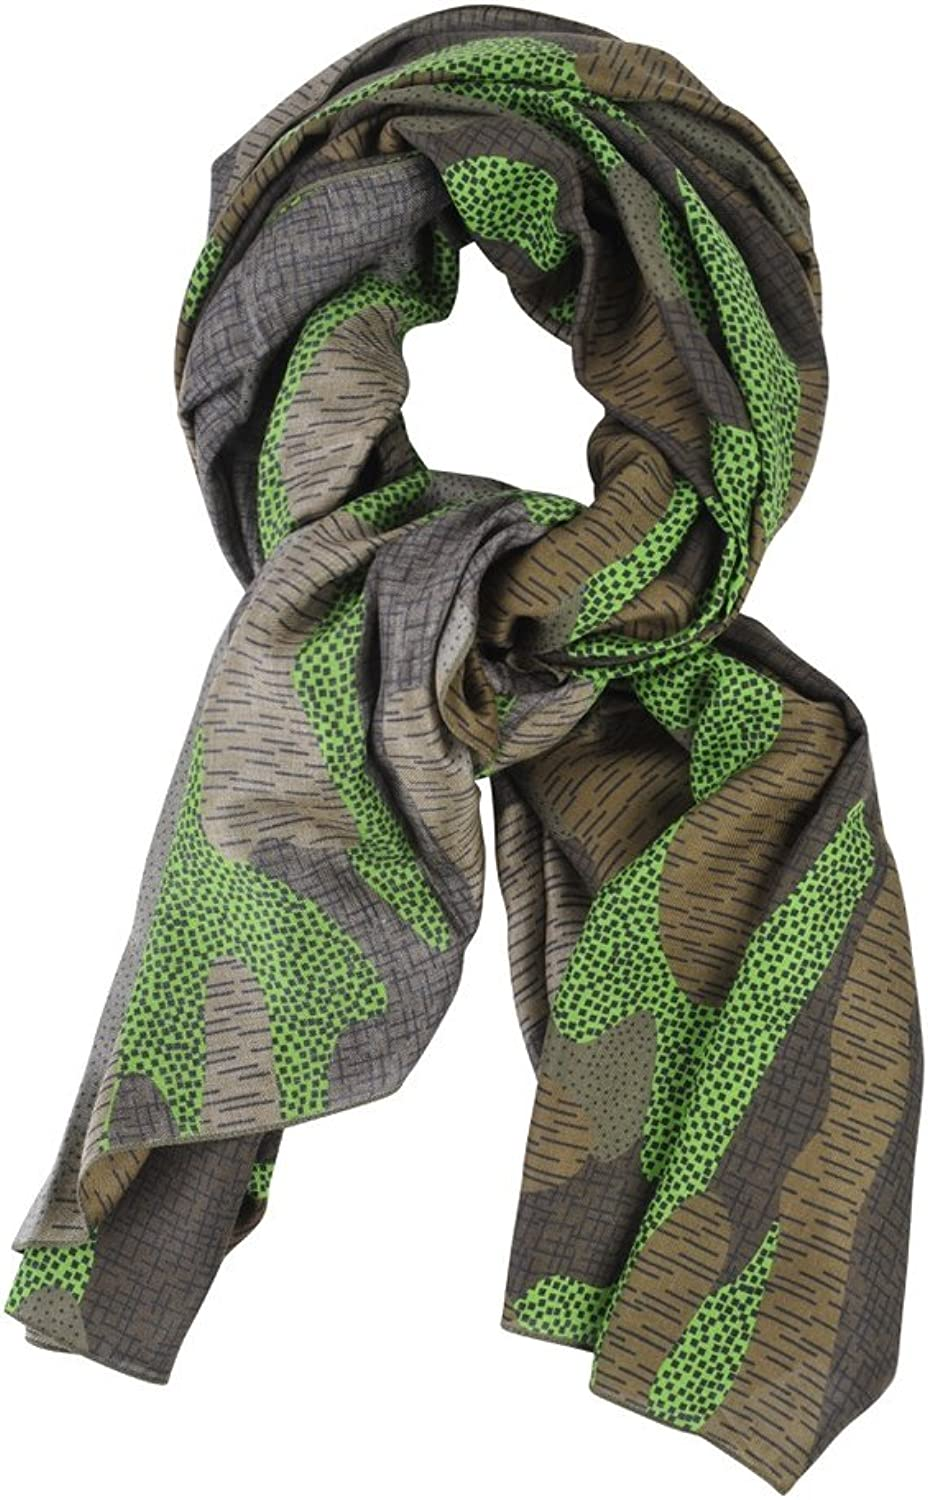 Furla Scarf Women's Green Brown Geometric pattern Modal 140 cm x 140 cm